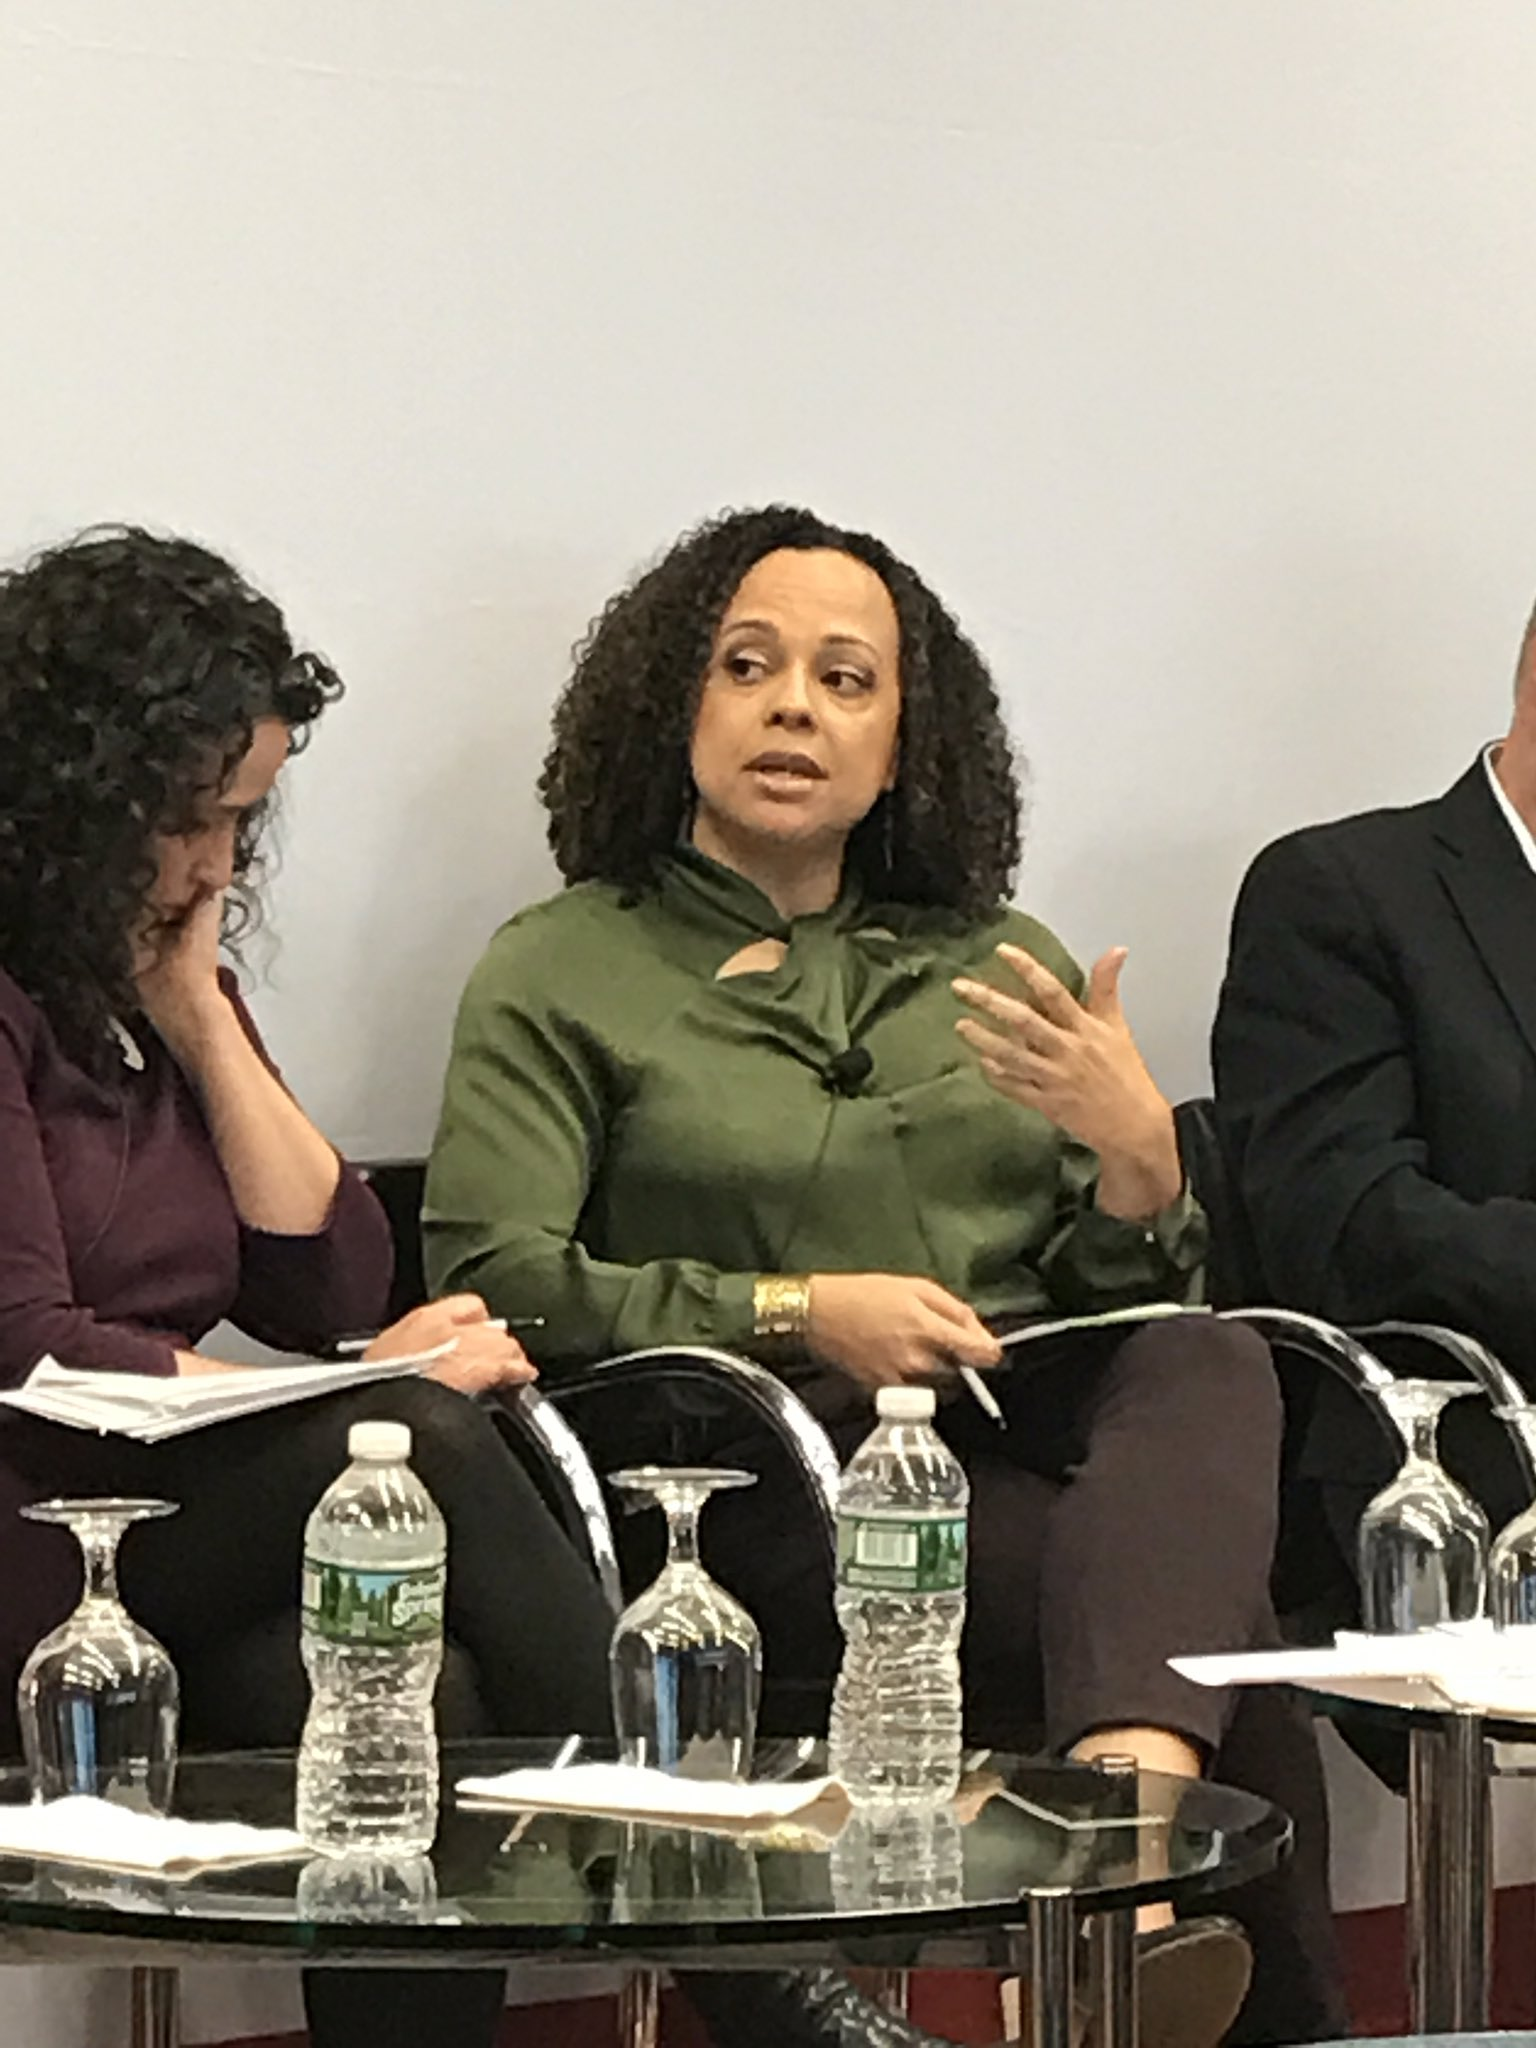 Leticia Peguero: We must continue to ask what r the root causes that make philanthropy necessary? #Schott25 @AndrusFamFund https://t.co/SwdI2O2mhs